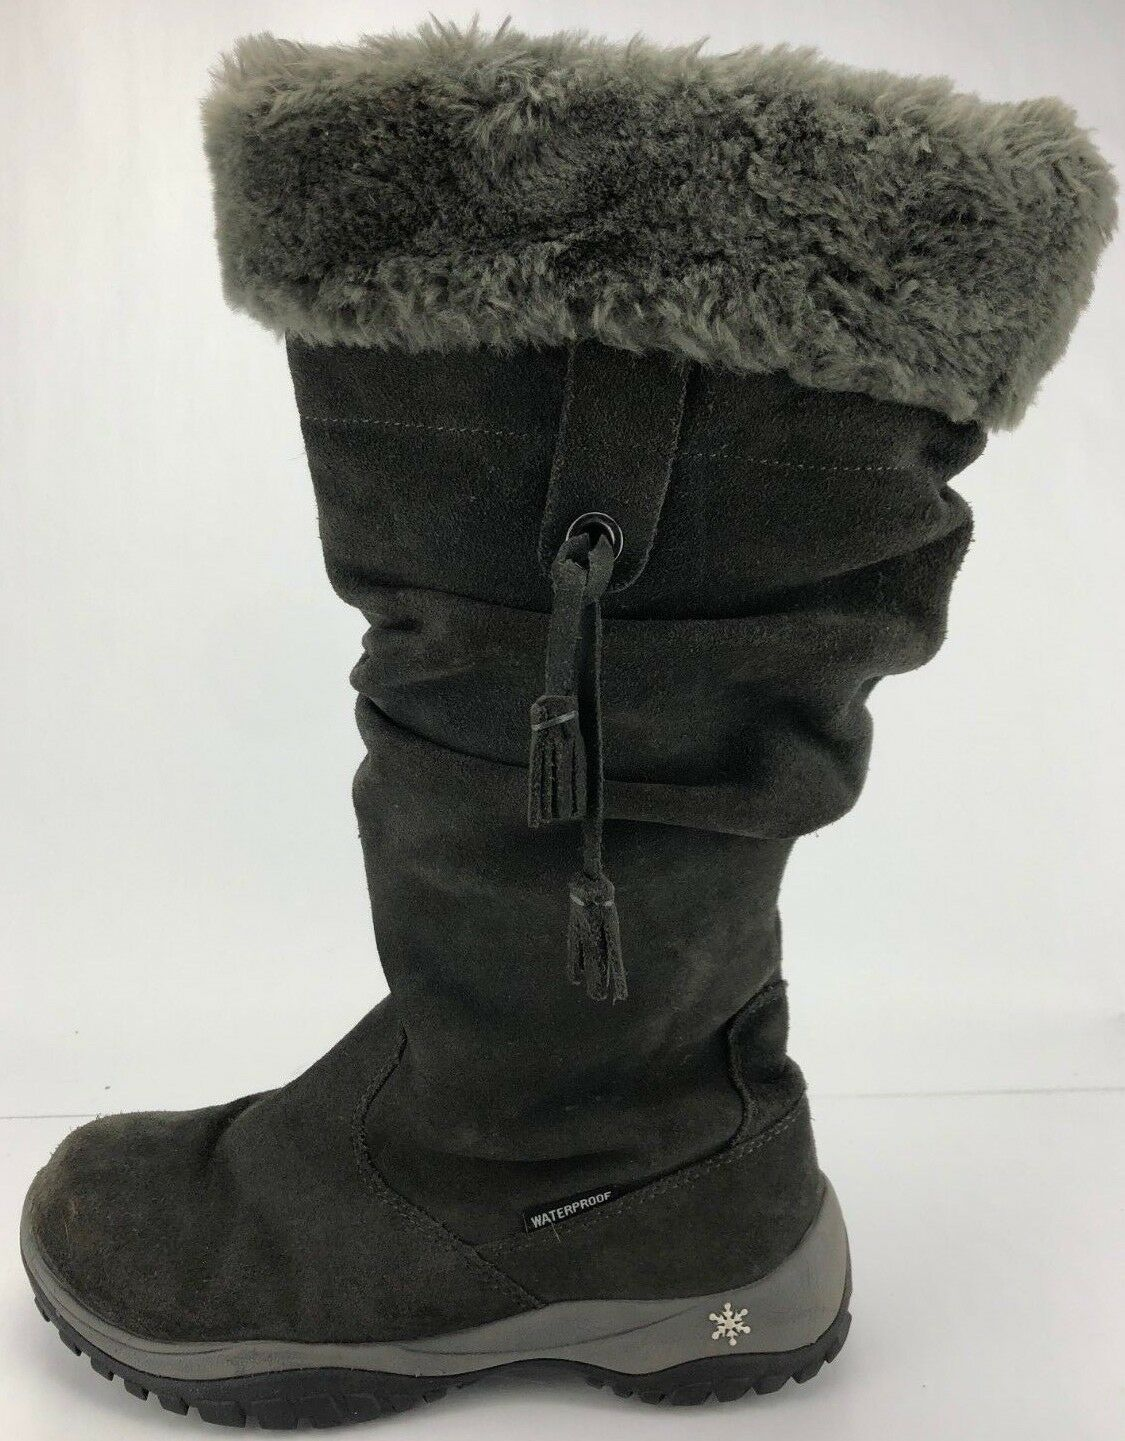 Baffin Winter Boots Katherine Shearling Lined Waterproof Suede shoes Women 9 Grey